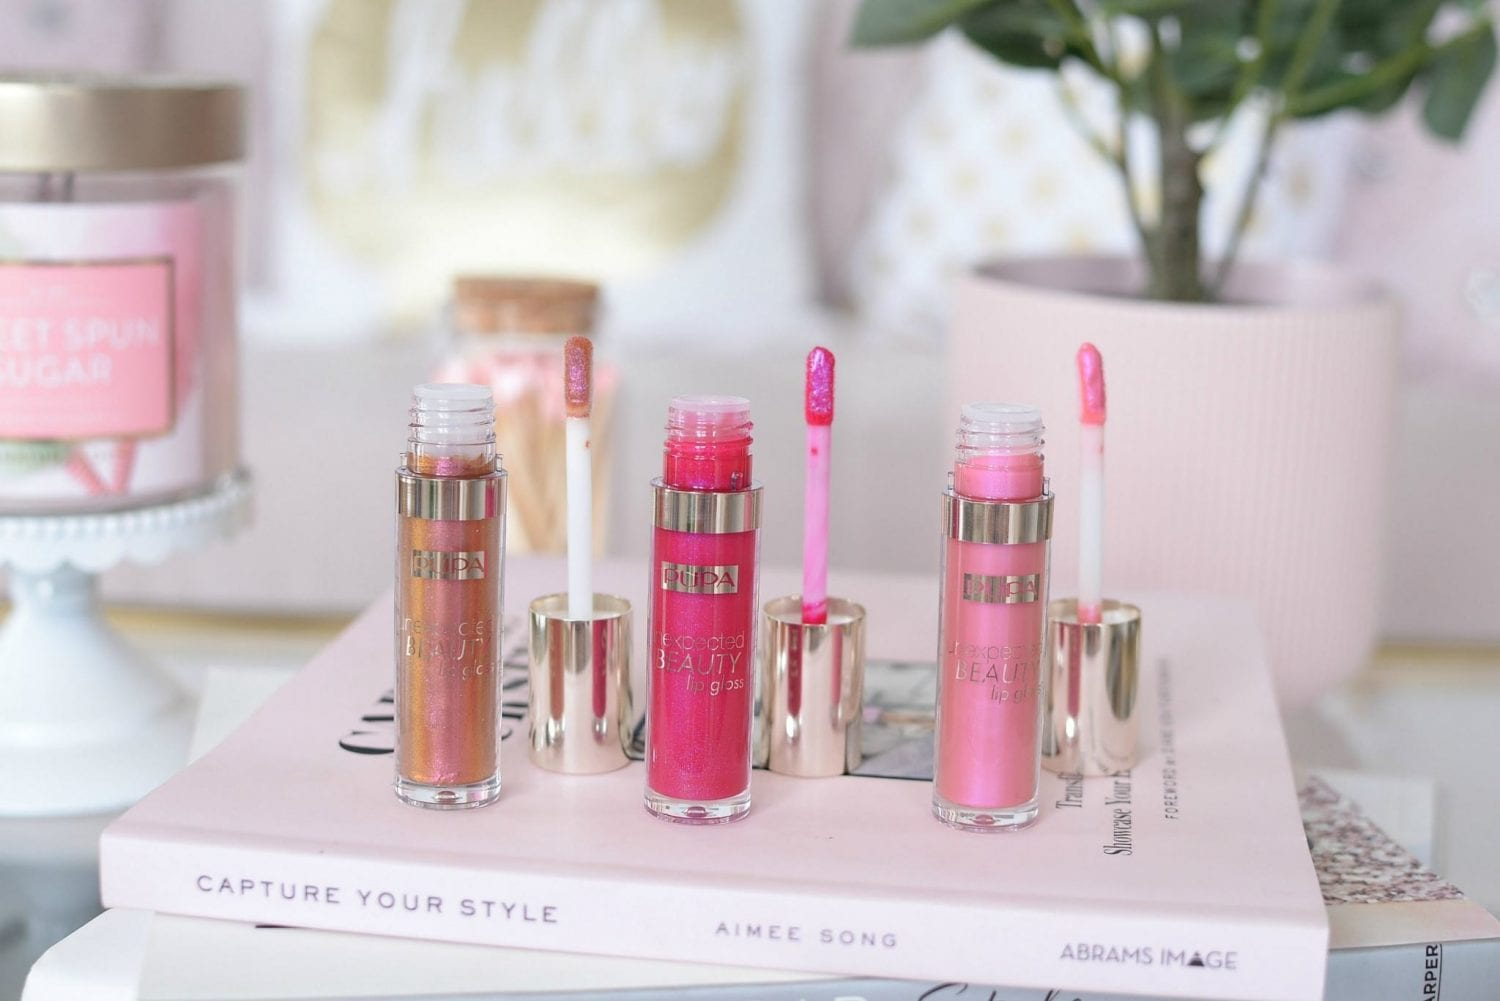 Pupa Unexpected Beauty Lip Gloss